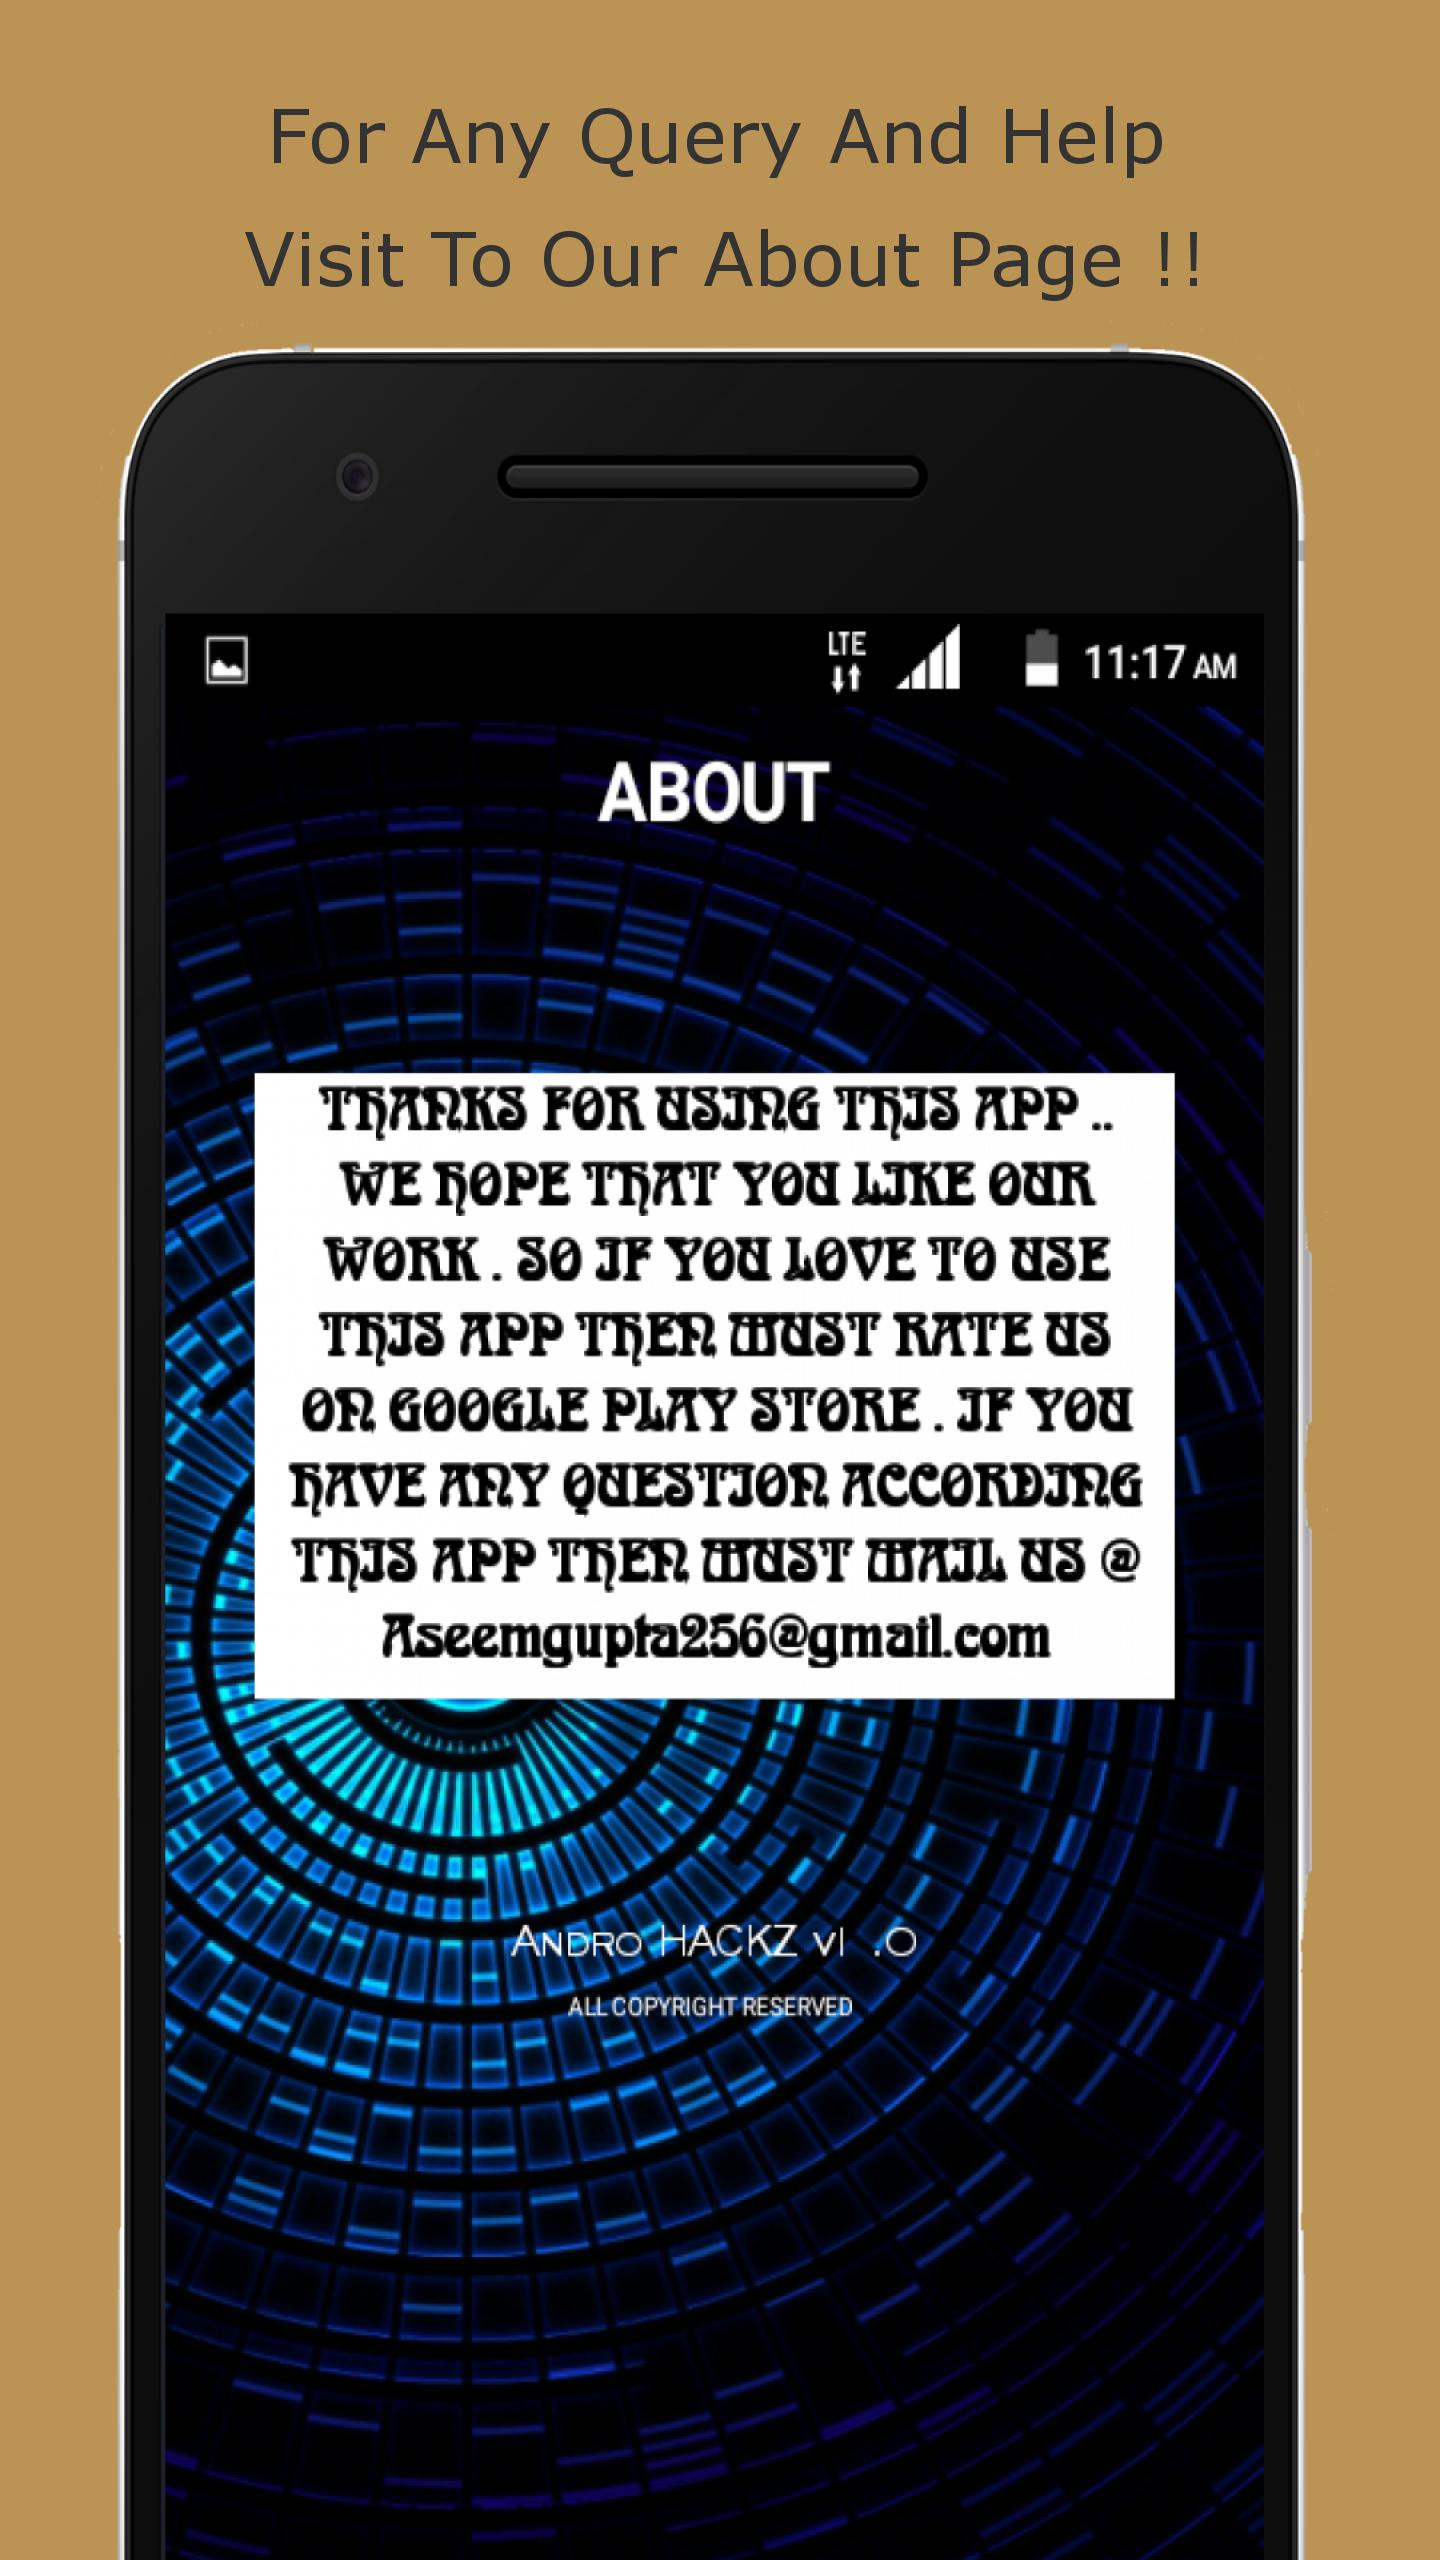 Andro Hack Z V1 0 Your Handy Tricky Instructor For Android Apk Download